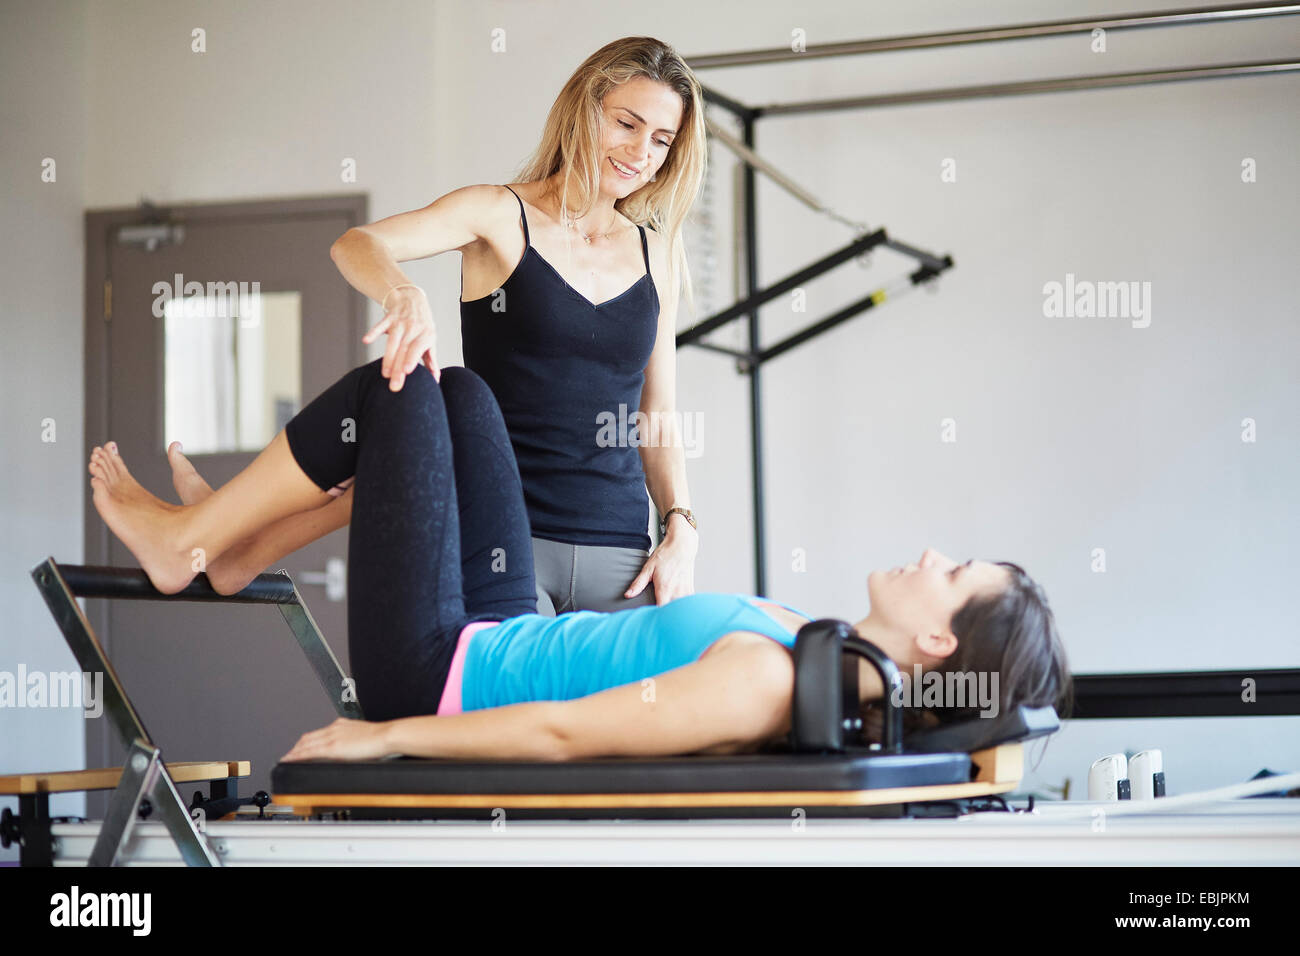 Female student lying on reformer in pilates gym - Stock Image